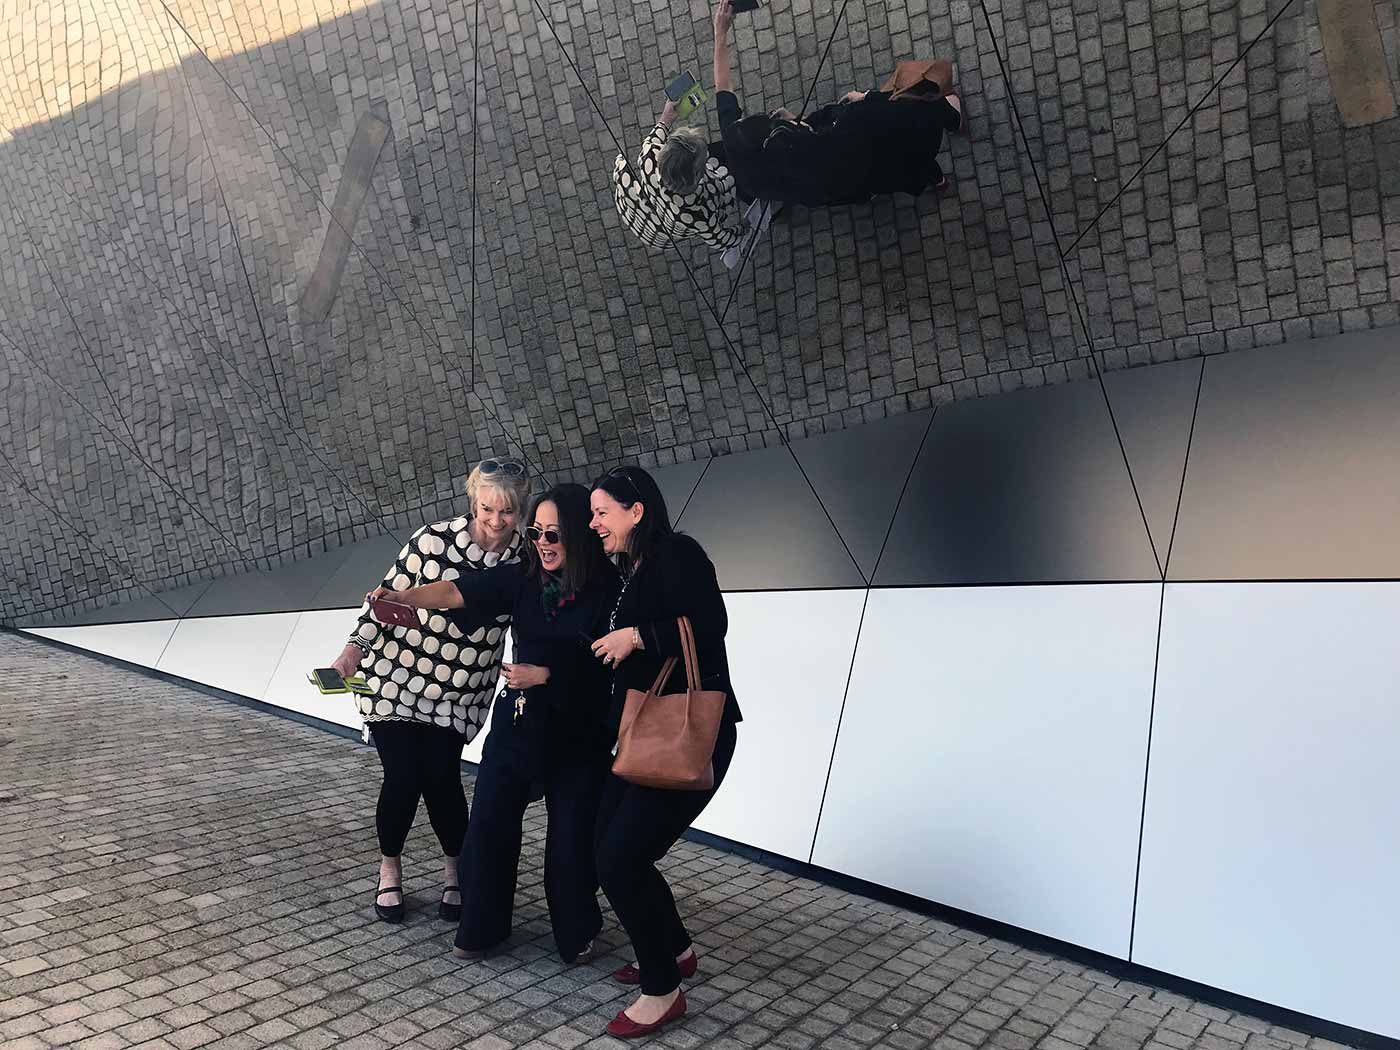 Three women taking a selfie in front of a large mirror wall. - click to view larger image